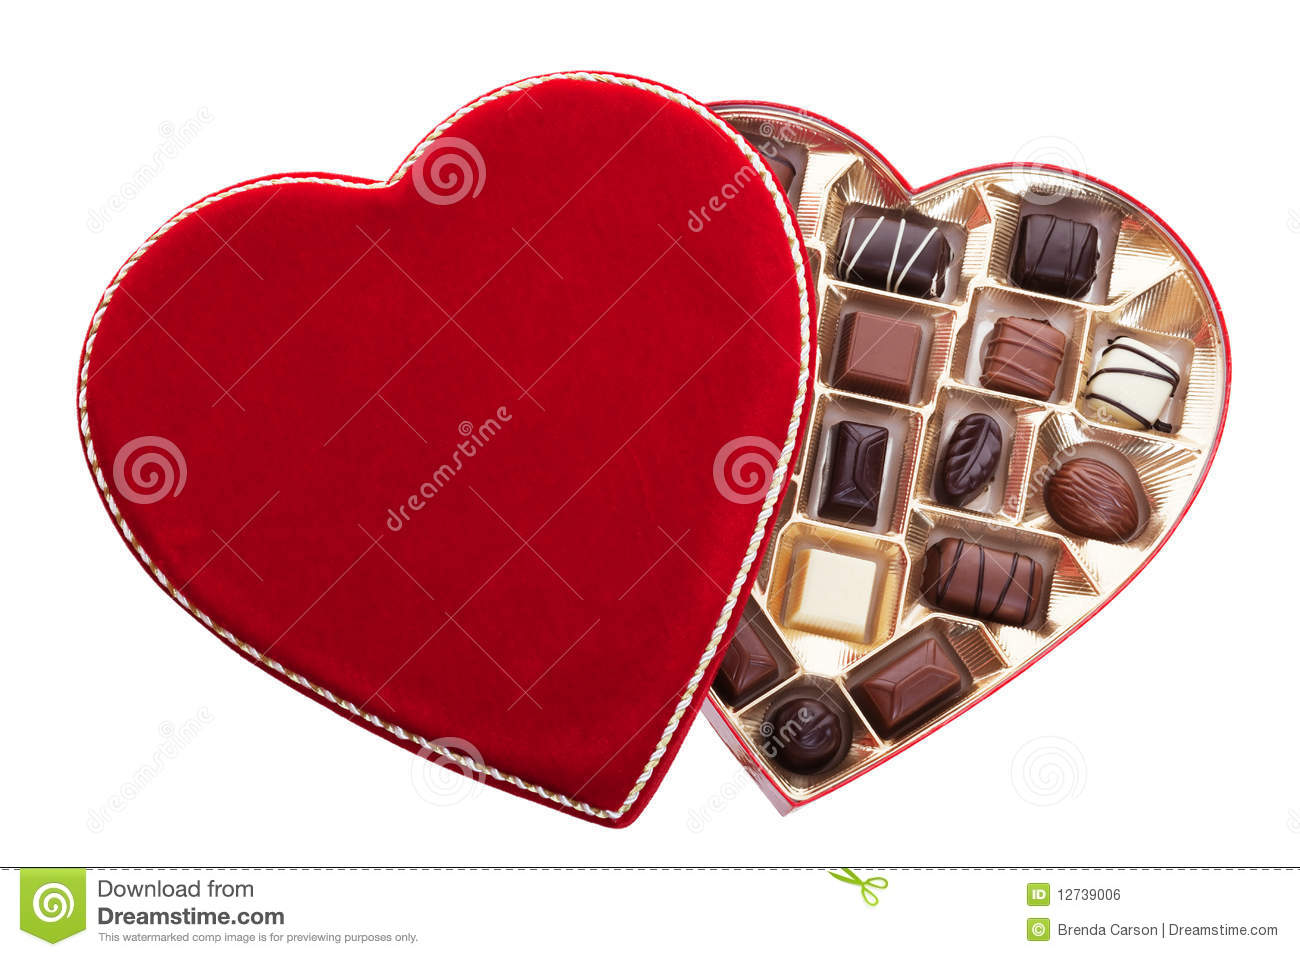 Heart Shaped Box Of Chocolates Royalty Free Stock Image ...